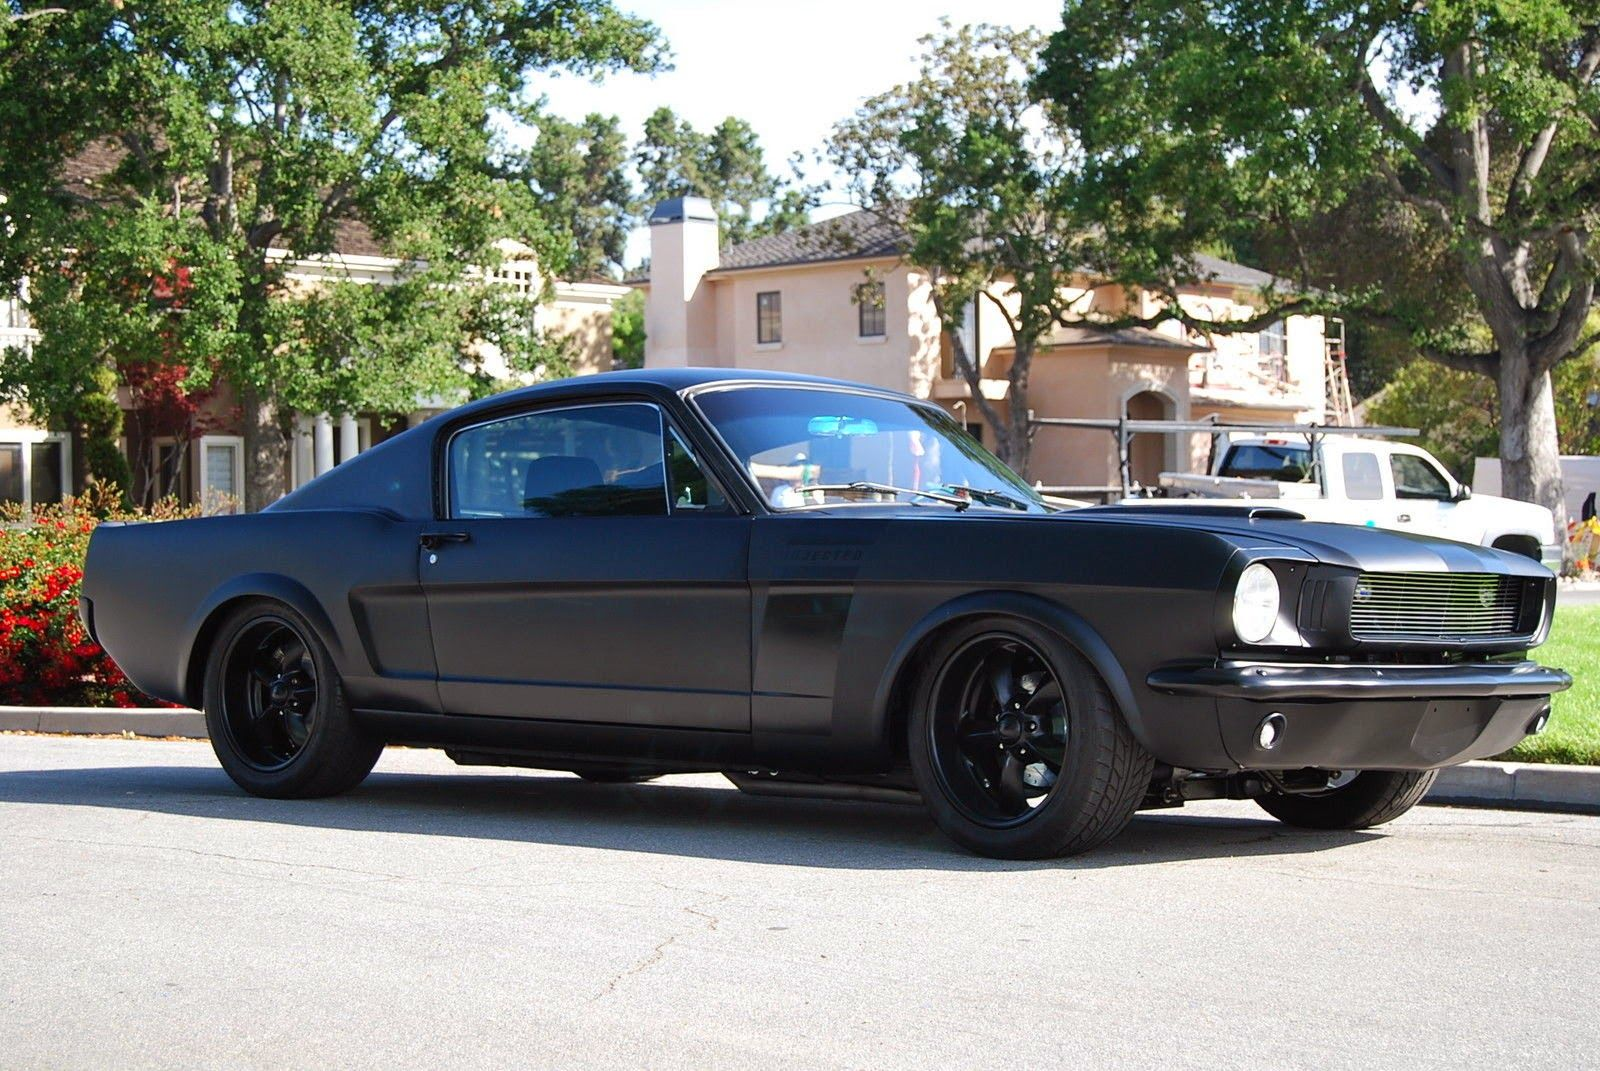 For Sale 1965 Ford Mustang Fastback ~ For Sale American Muscle Cars ...